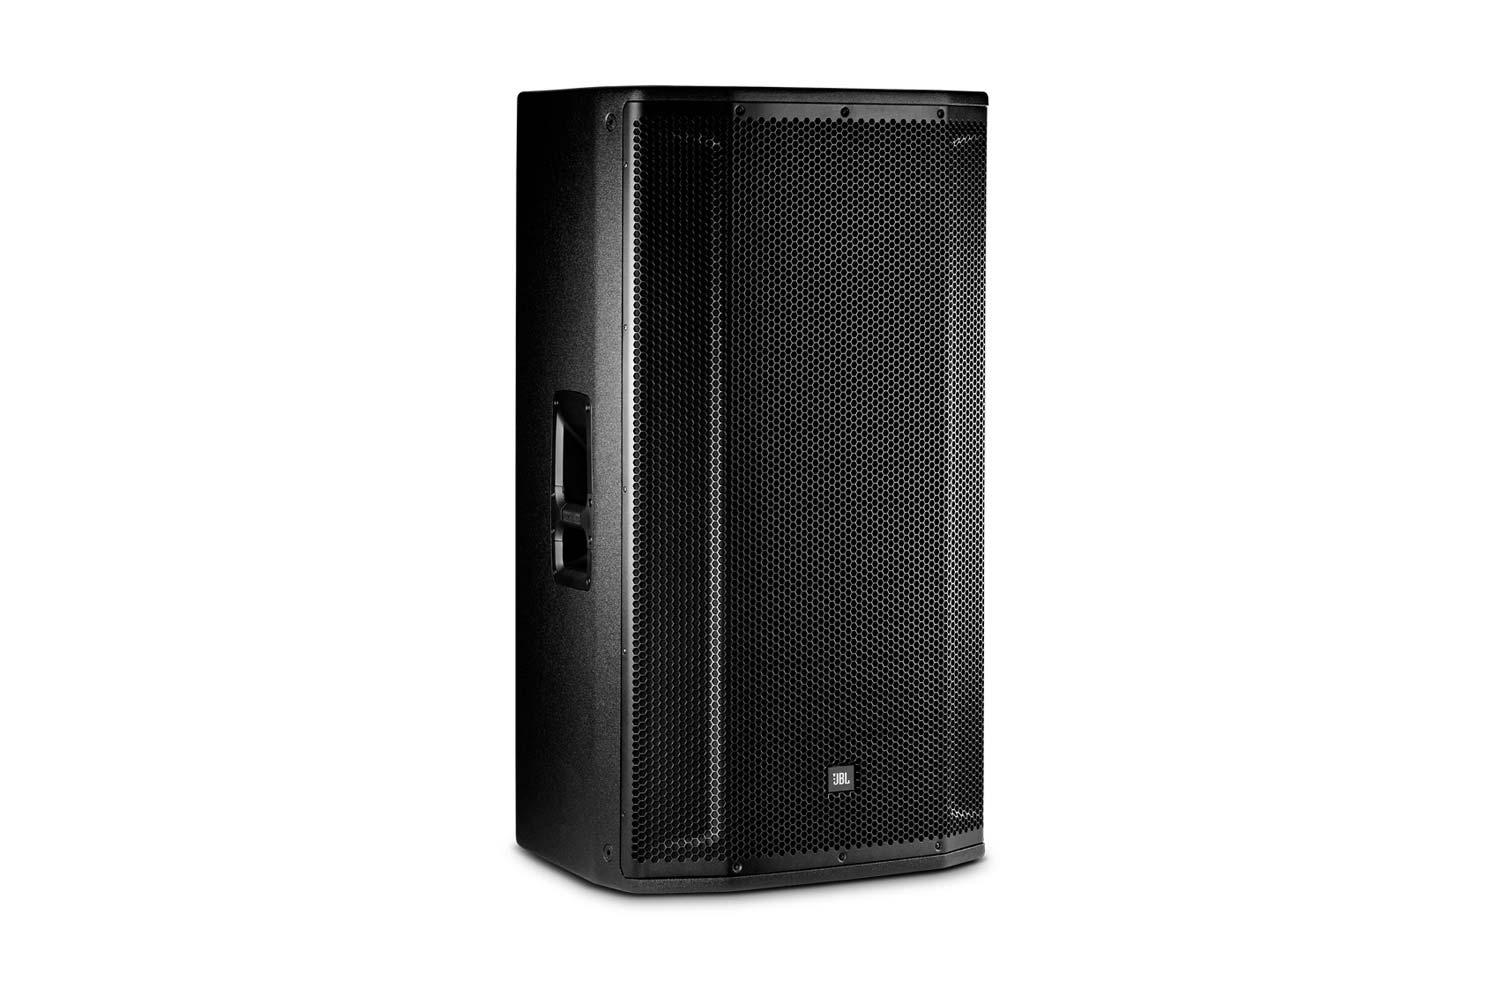 2 jbl srx835 3 way 2000 watt powered speakers bundle 2 free deluxe covers 50 39 pro xlr c. Black Bedroom Furniture Sets. Home Design Ideas